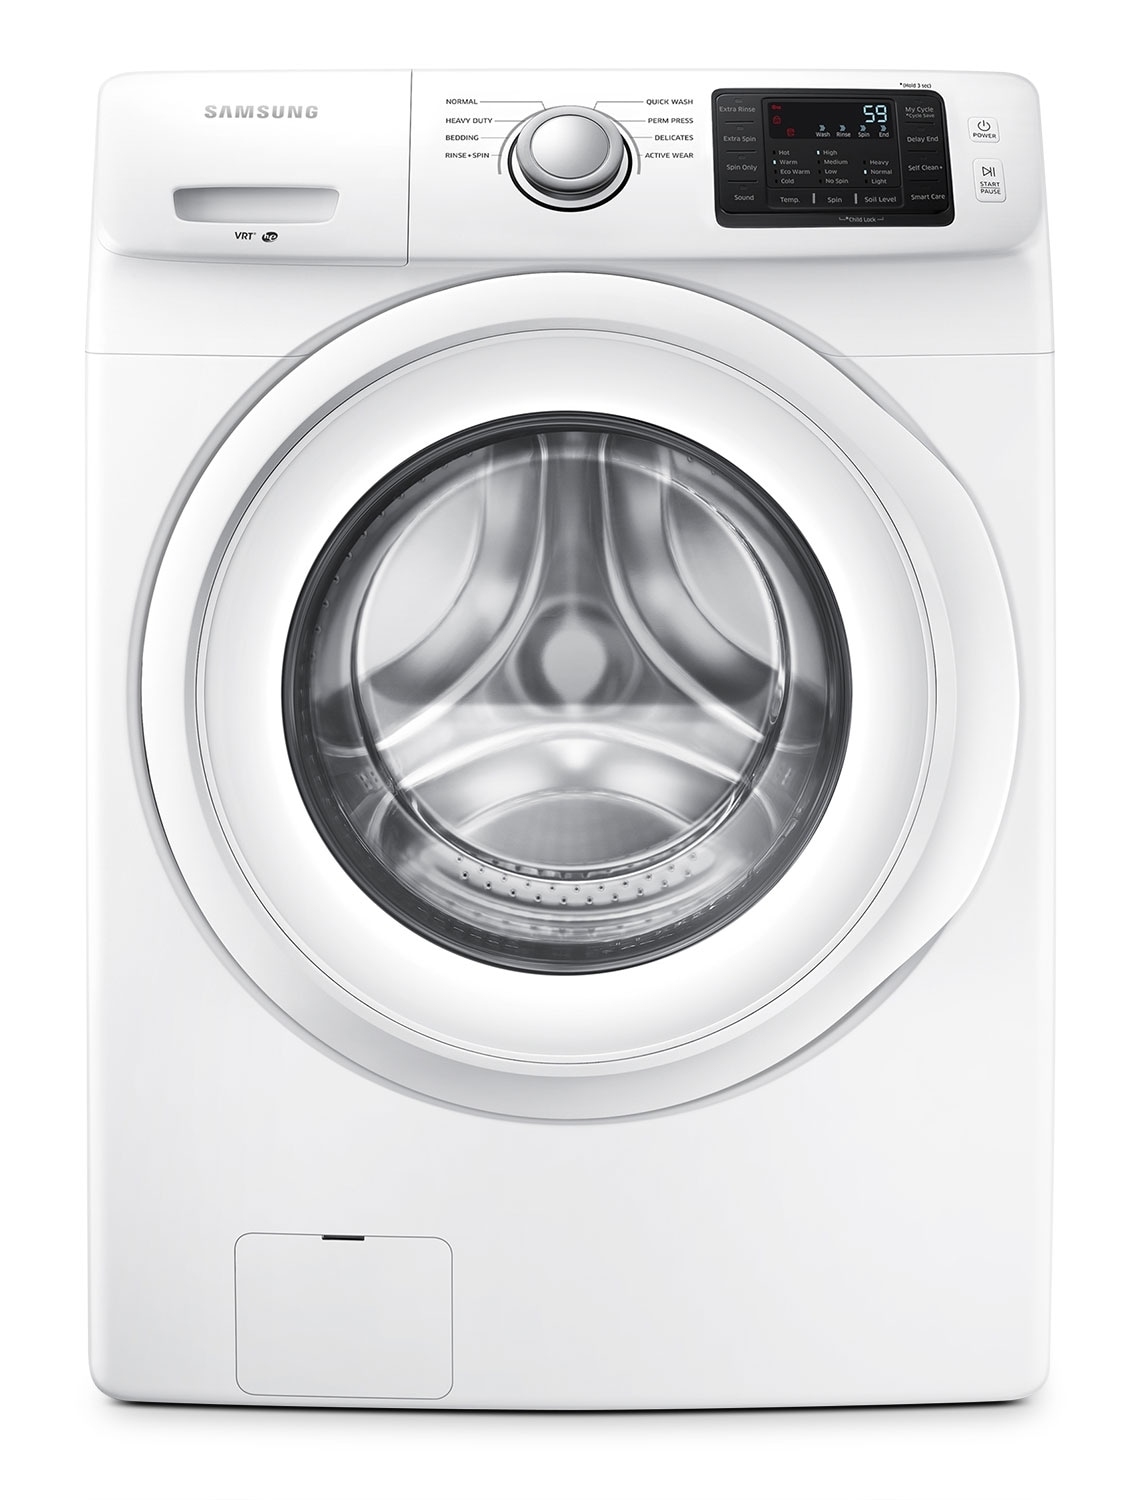 Washers and Dryers - Samsung 4.8 Cu. Ft. Front-Load Washer  - WF42H5000AW/A2